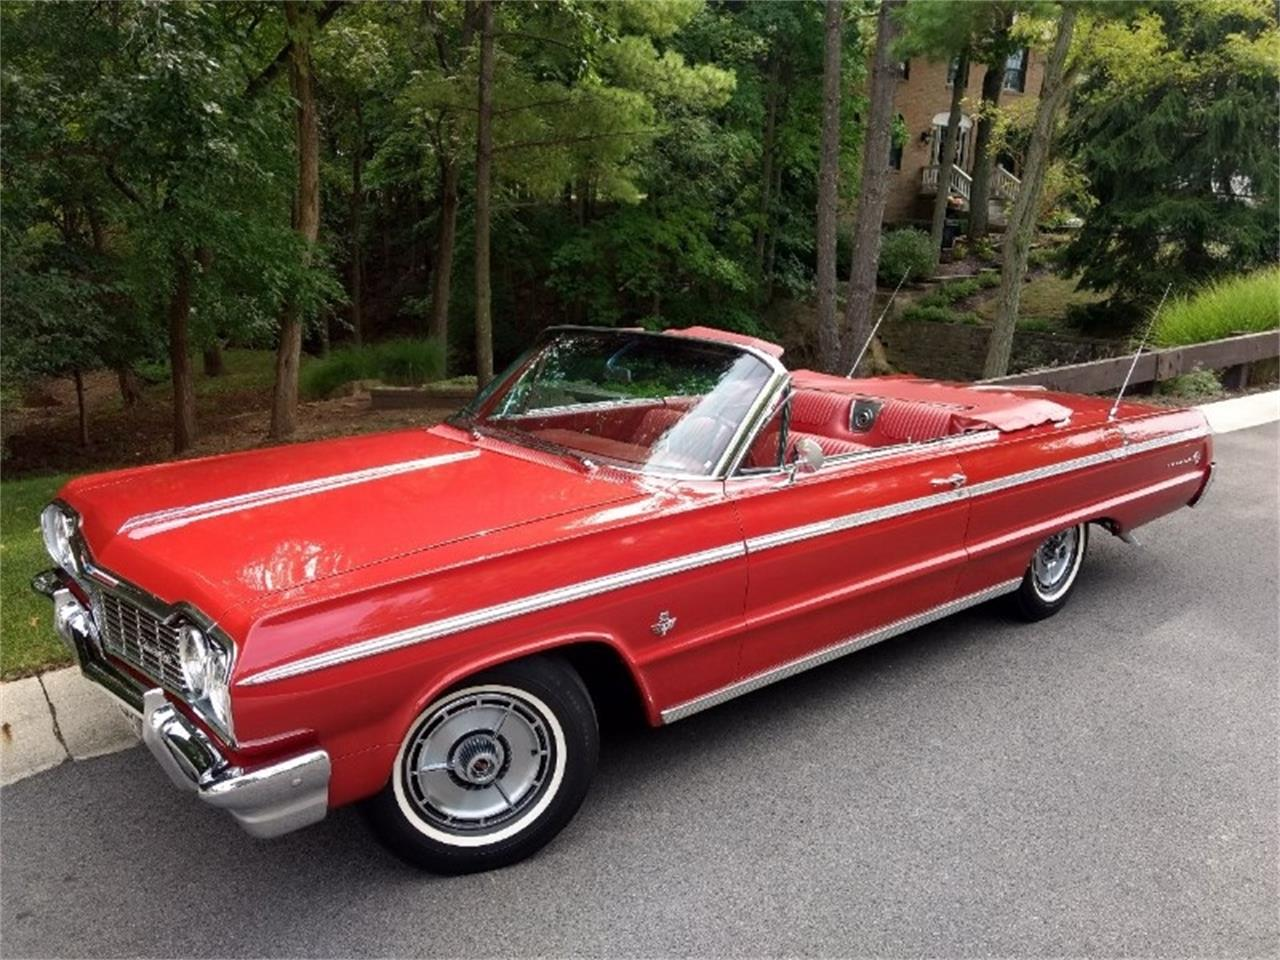 Large Picture of 1964 Chevrolet Impala SS located in Ohio Auction Vehicle Offered by Route 36 Motor Cars - QX31